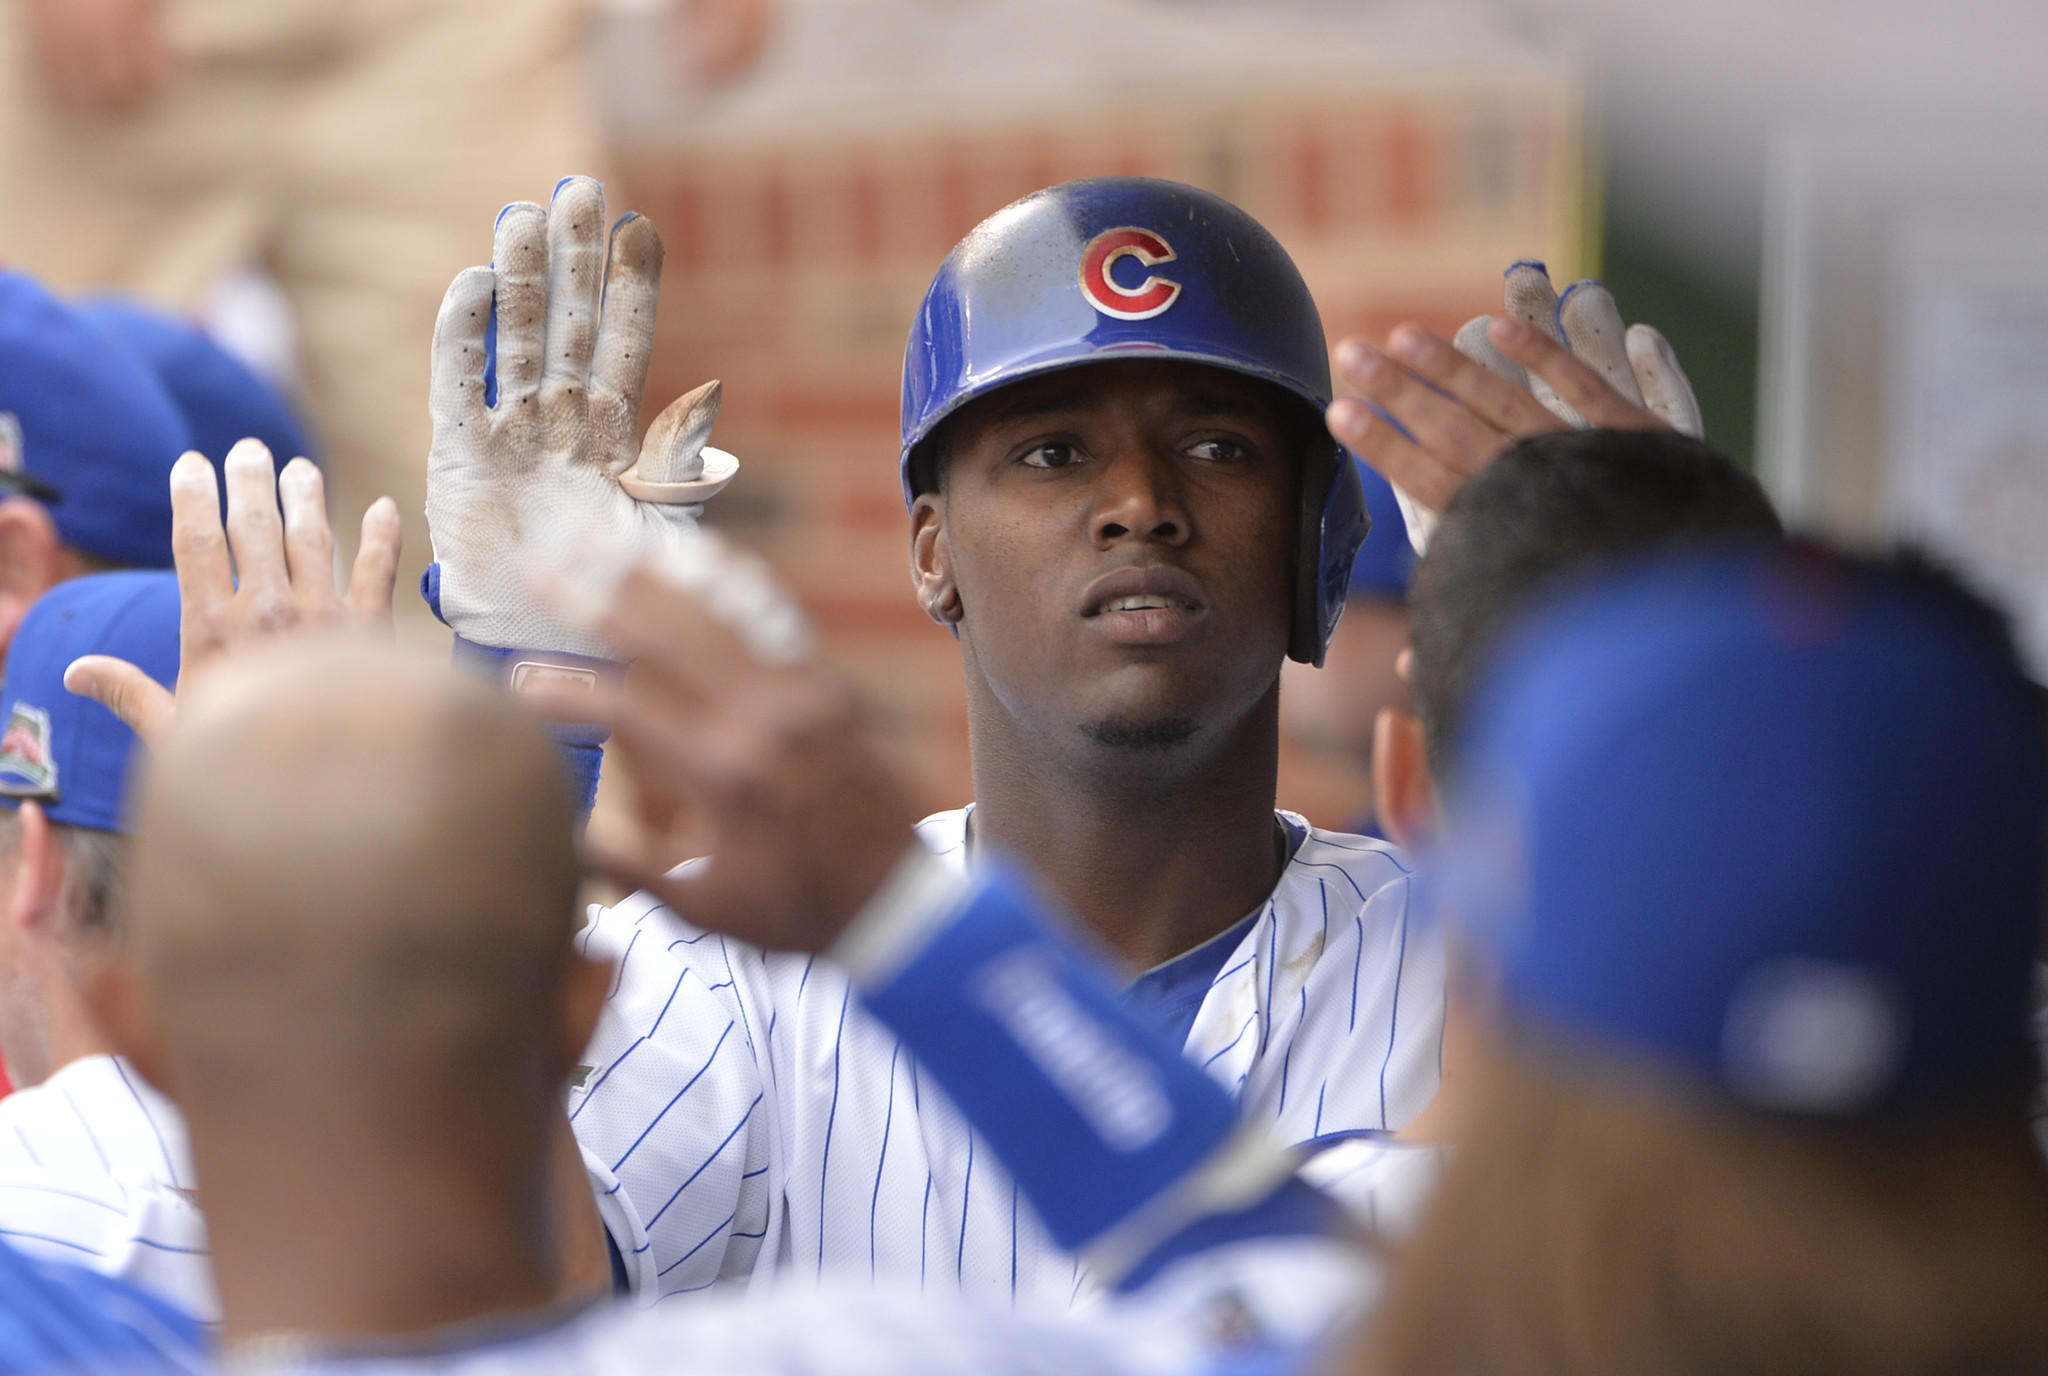 Junior Lake of the Cubs